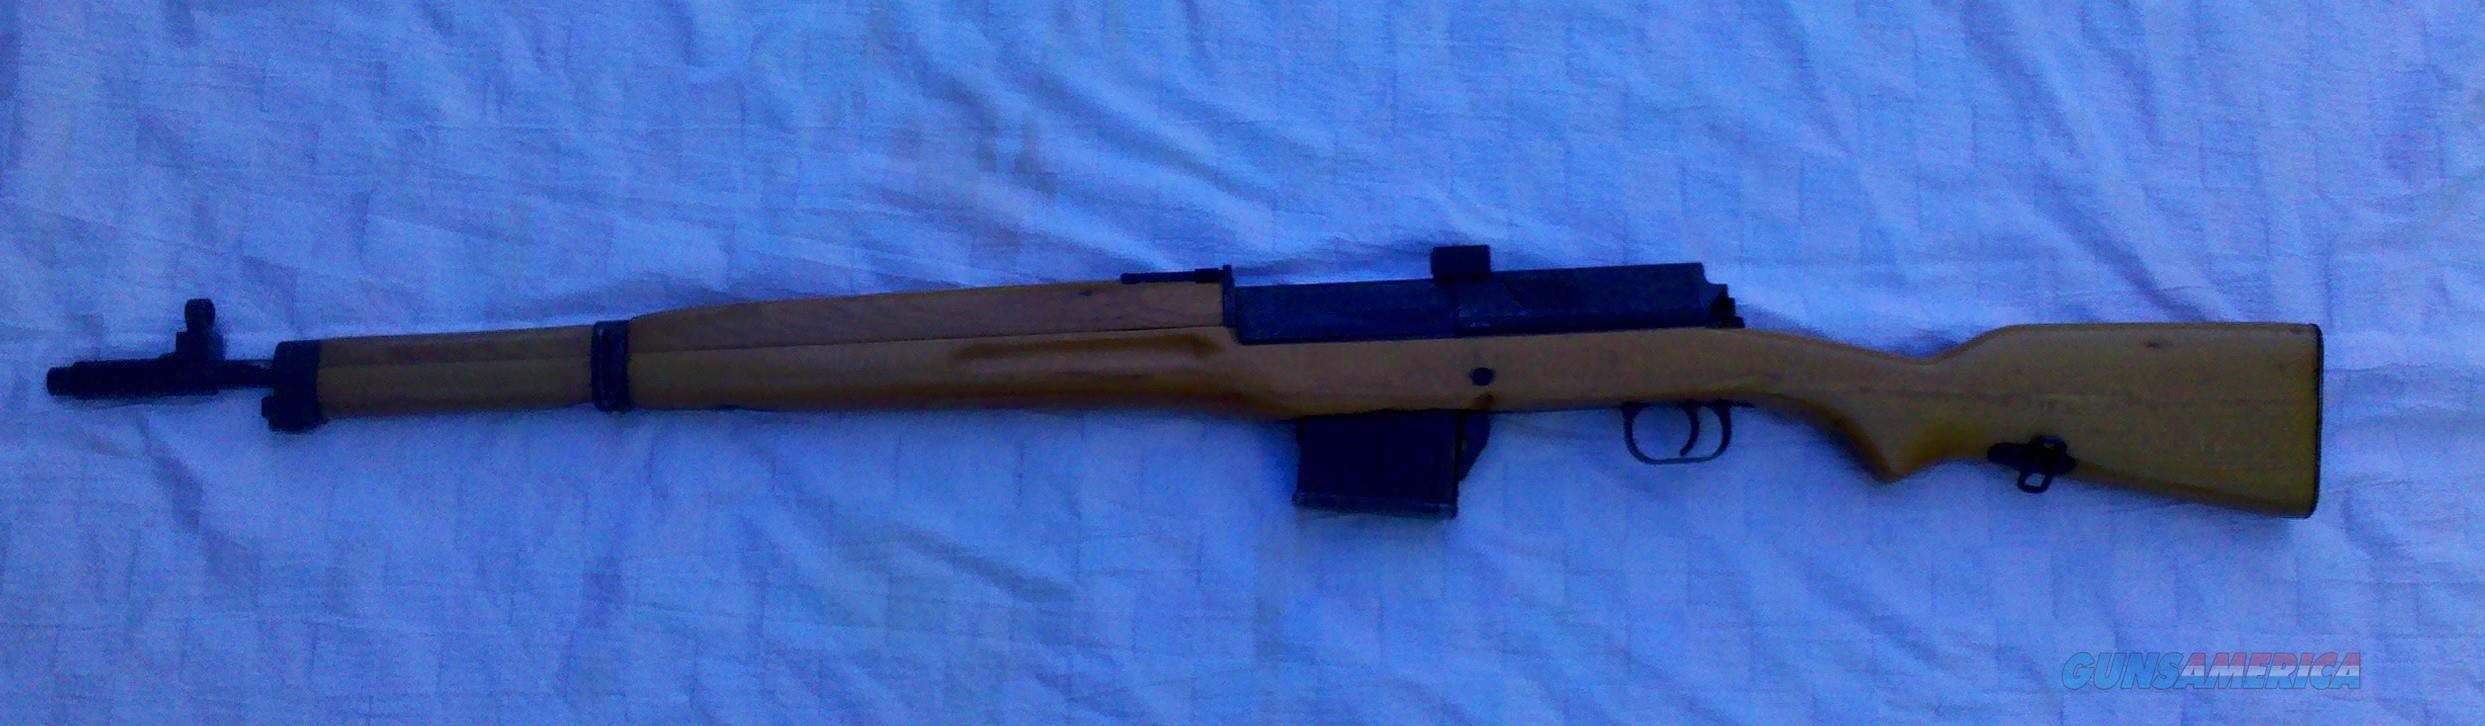 Egyptian Hakim Semi-Auto Rifle 8mm  Guns > Rifles > Surplus Rifles & Copies